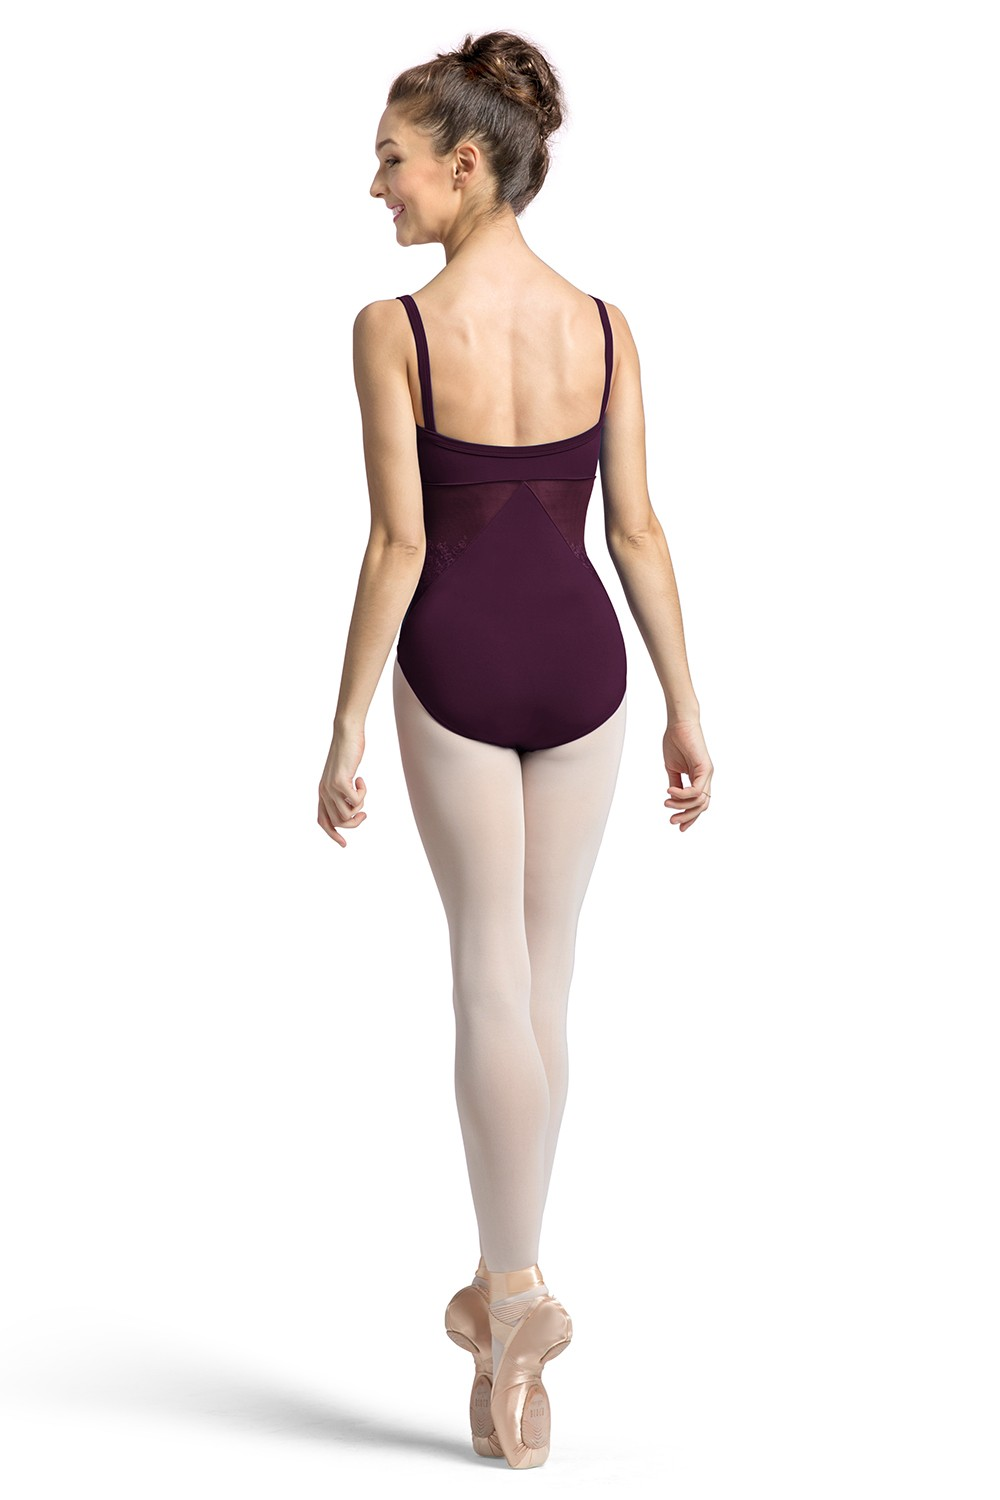 Indalilly Women's Dance Leotards